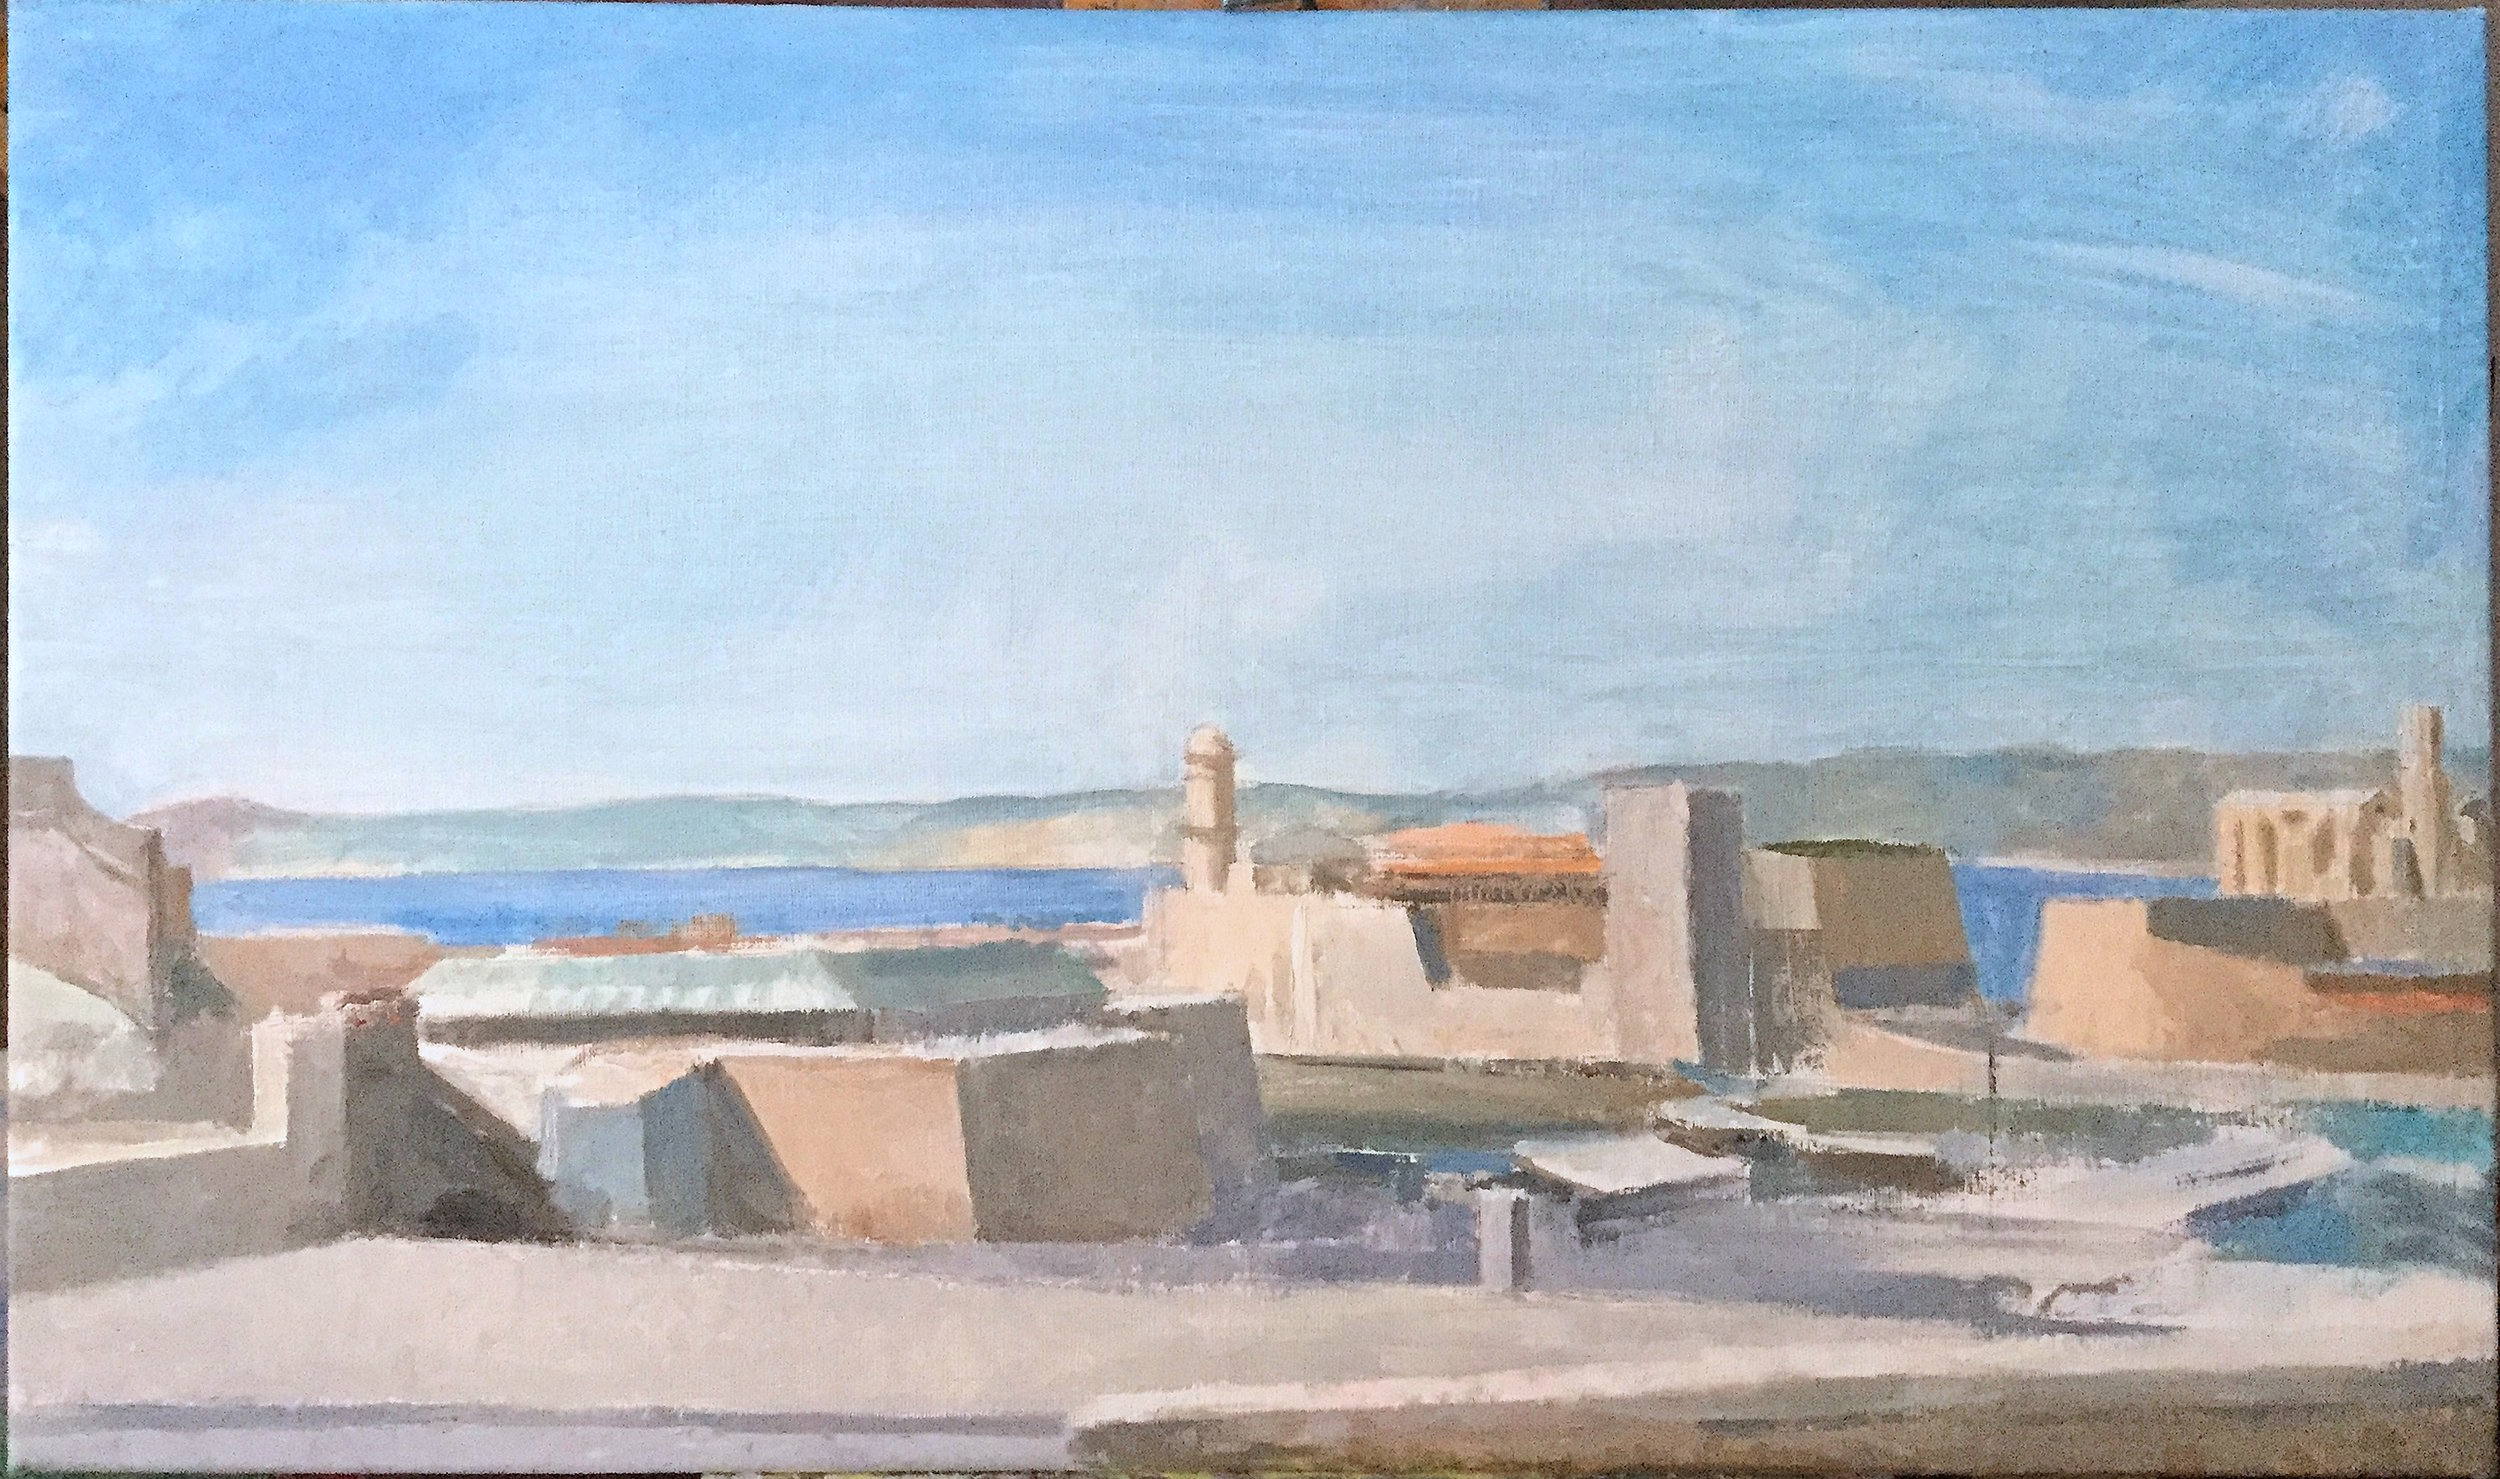 Marseille, Vieux Port and Harbor, 17 x 29 inches, oil on linen